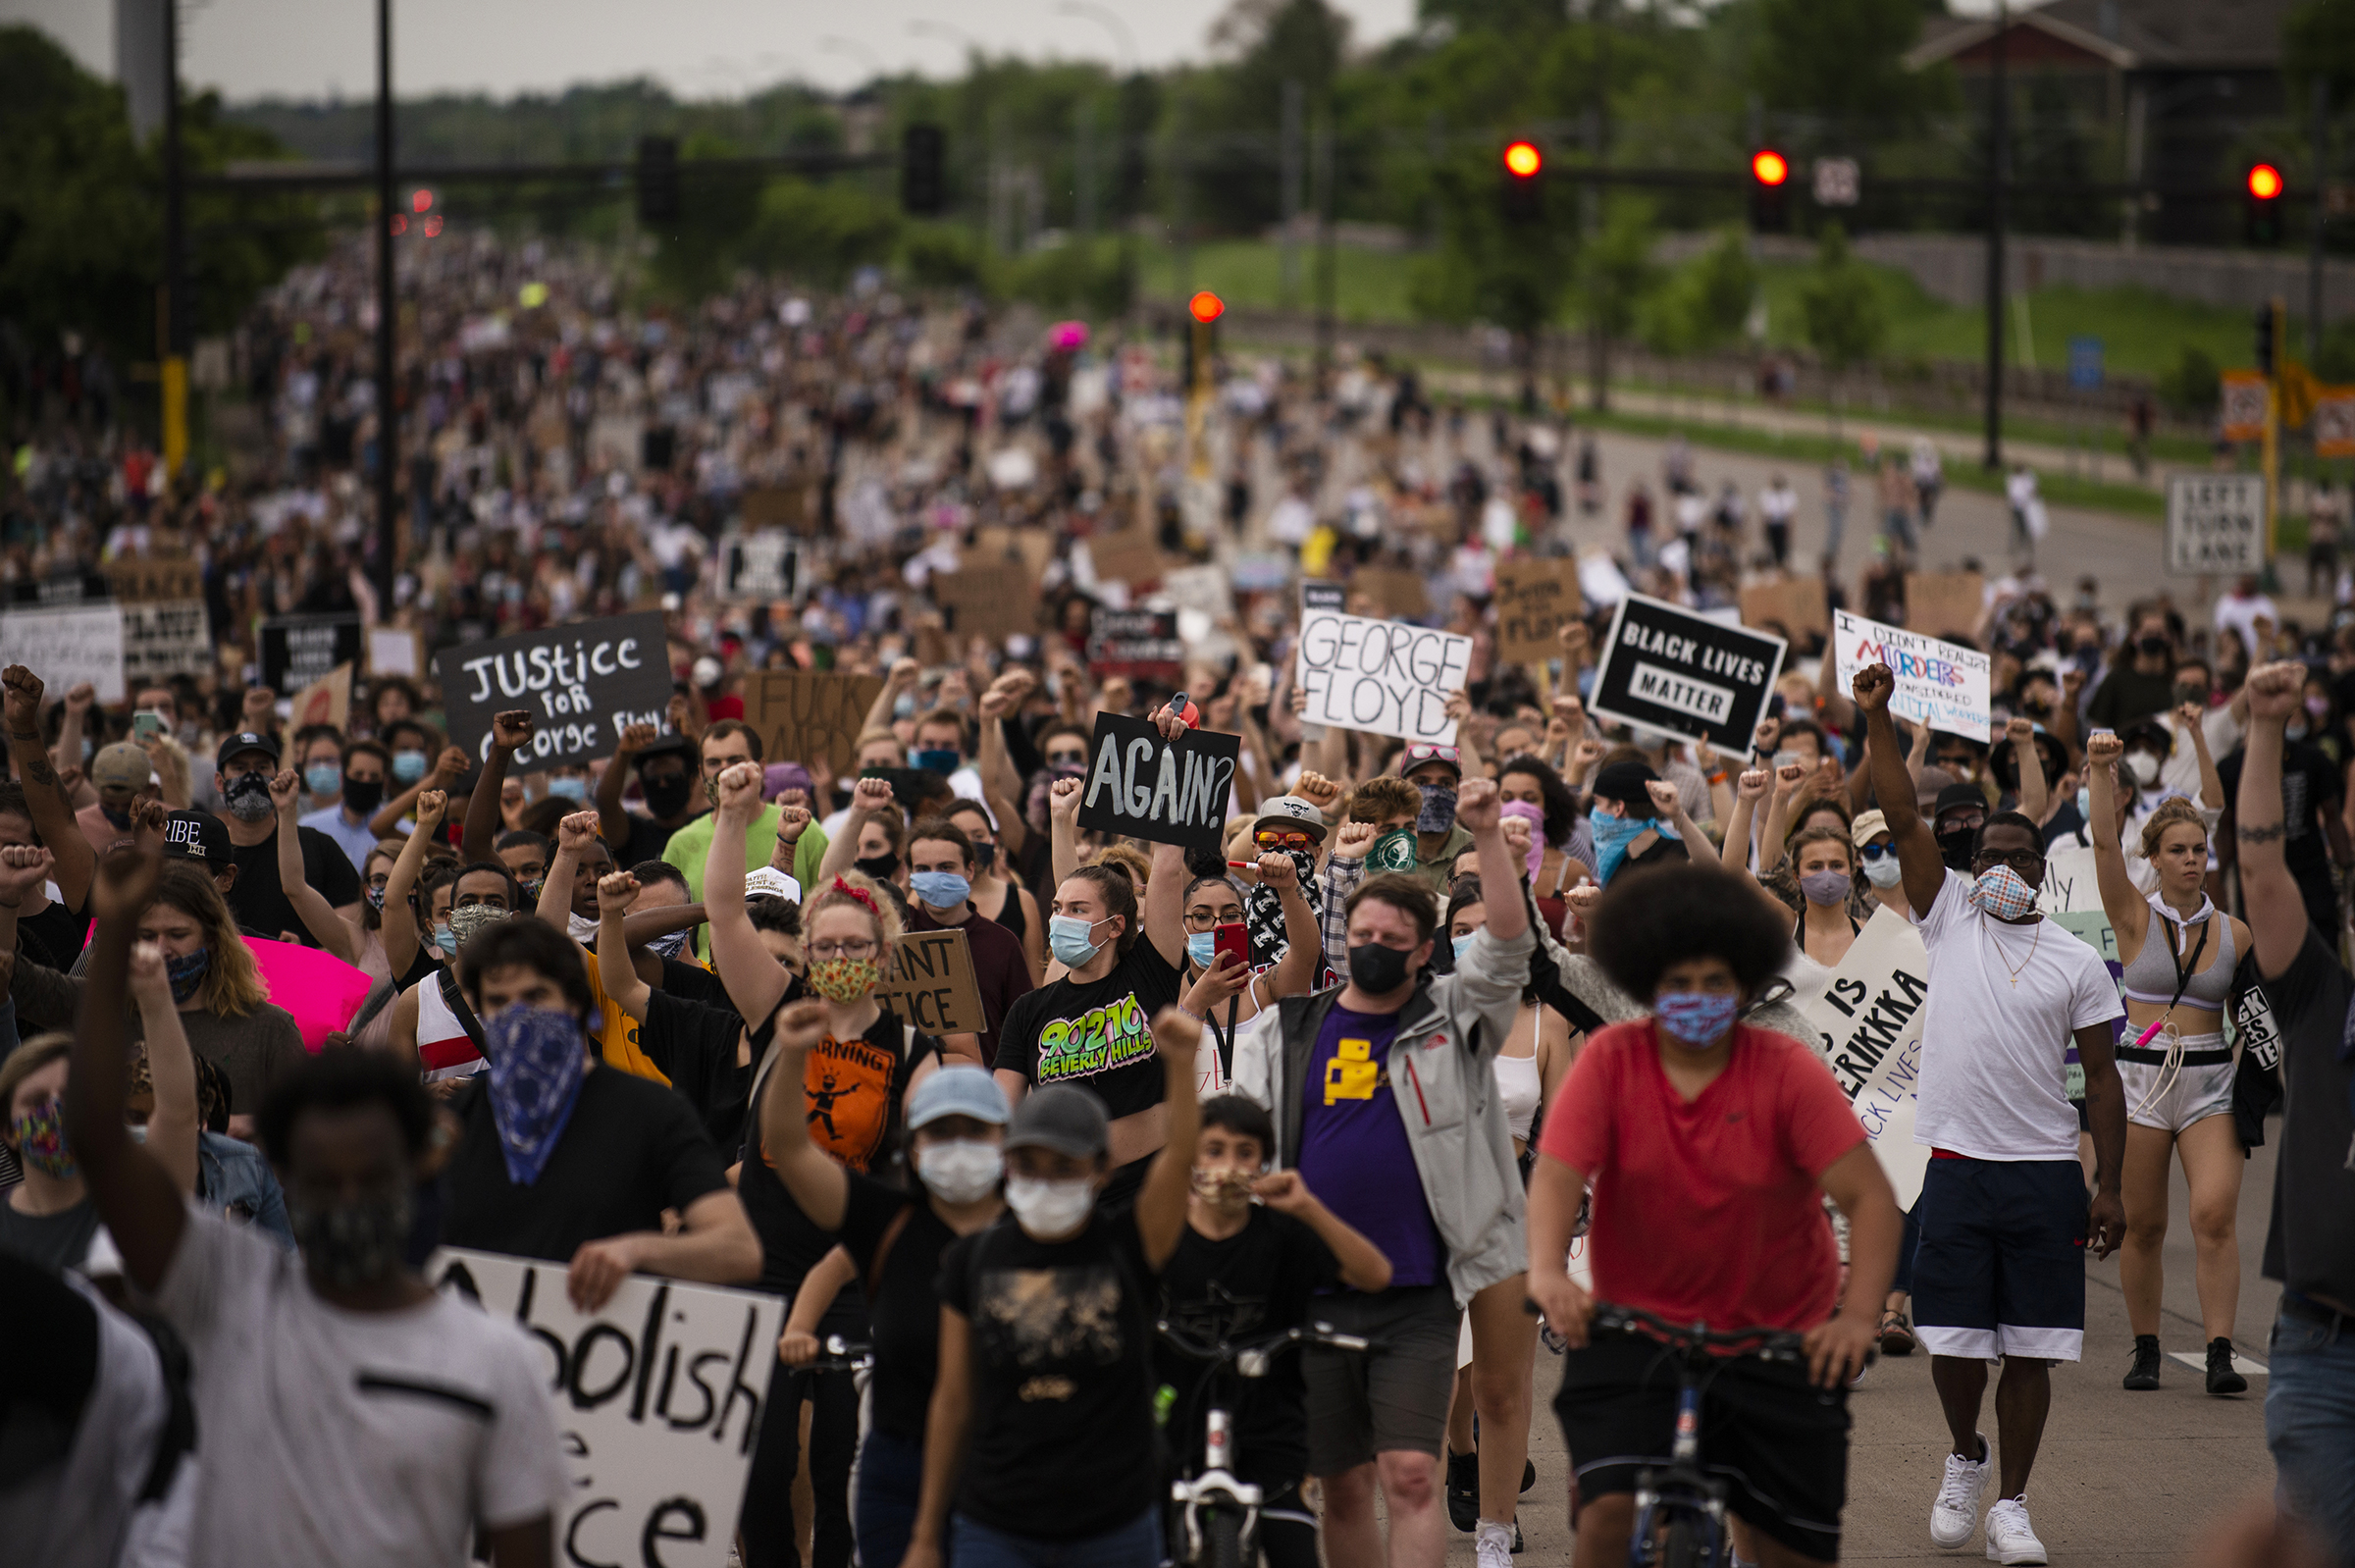 Protesters decrying the killing of George Floyd march on Hiawatha Avenue in Minneapolis on May 26.